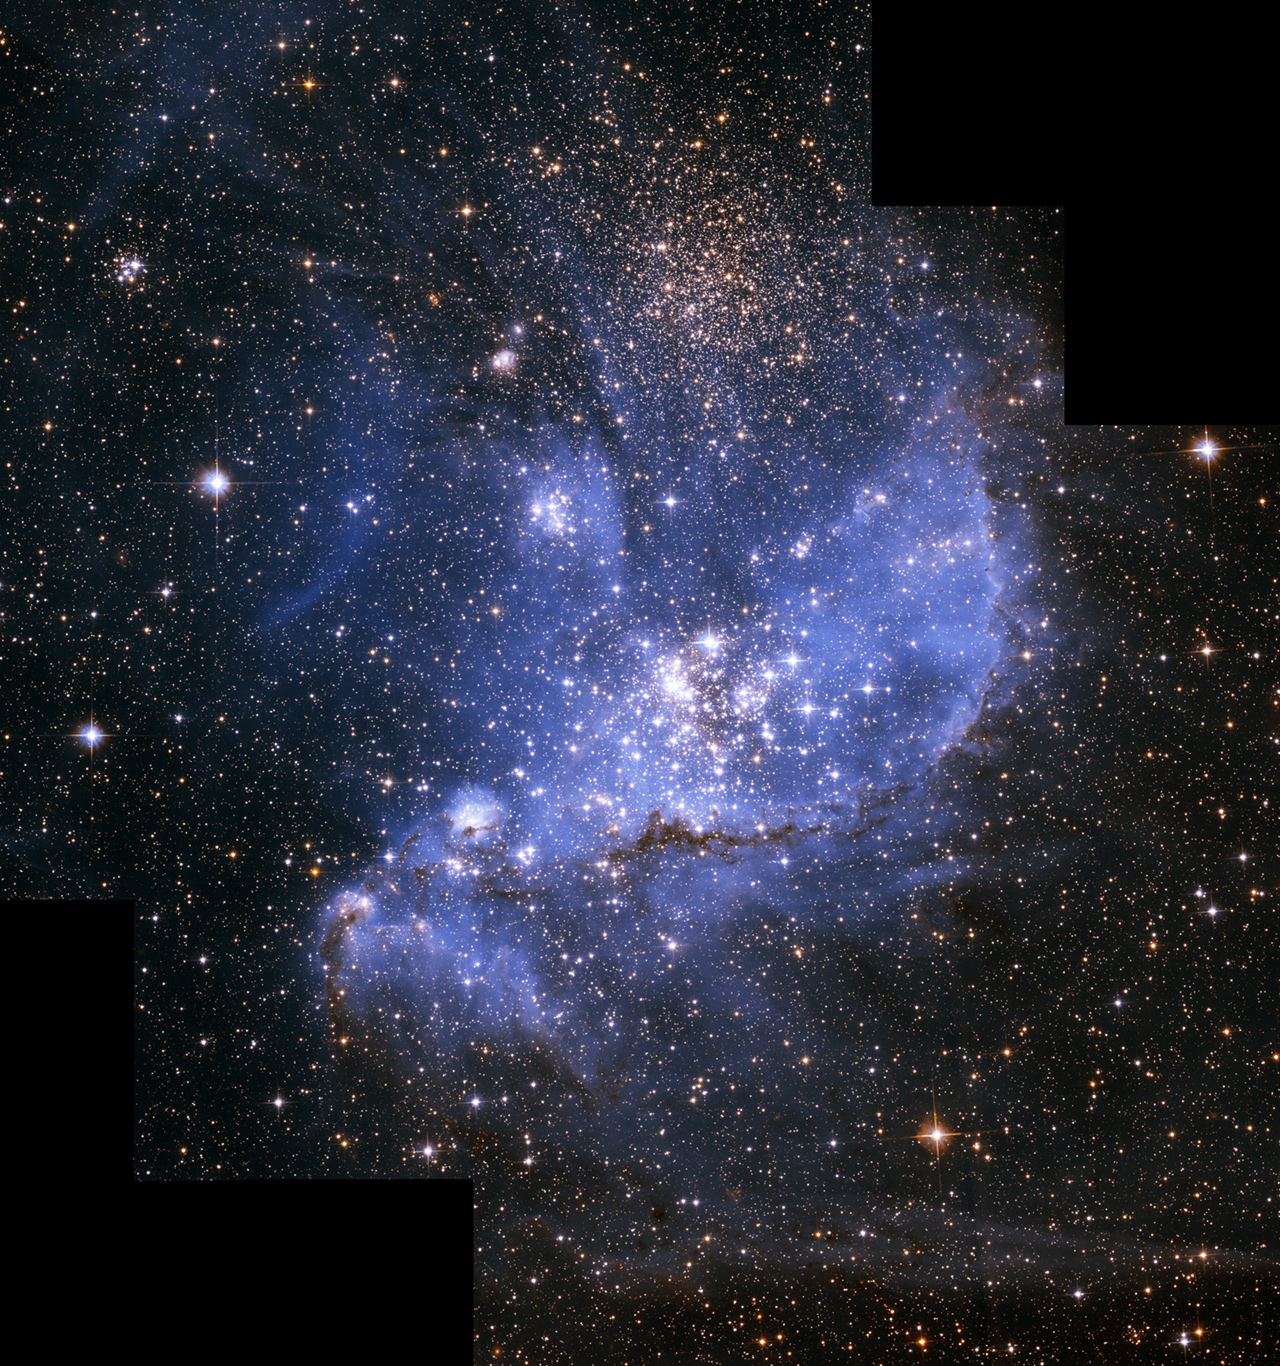 Infant stars embedded in the nebula NGC 346